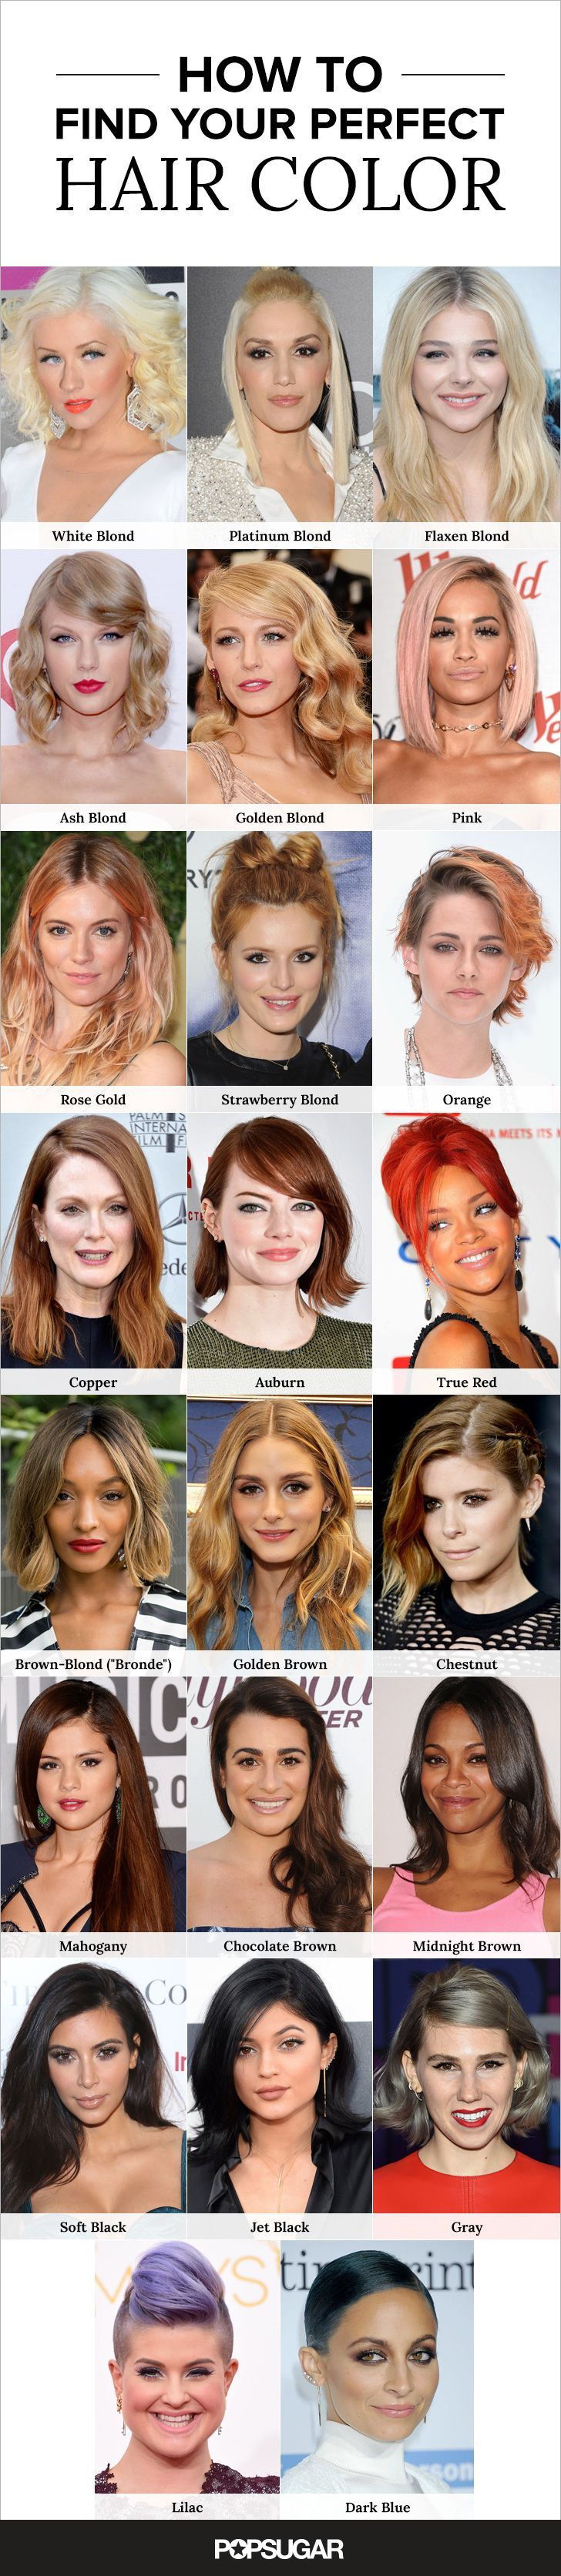 The ultimate hair-color guide — get inspired by these gorgeous celebrity shades, then bring this to the salon so your stylist gives you exactly what you want!